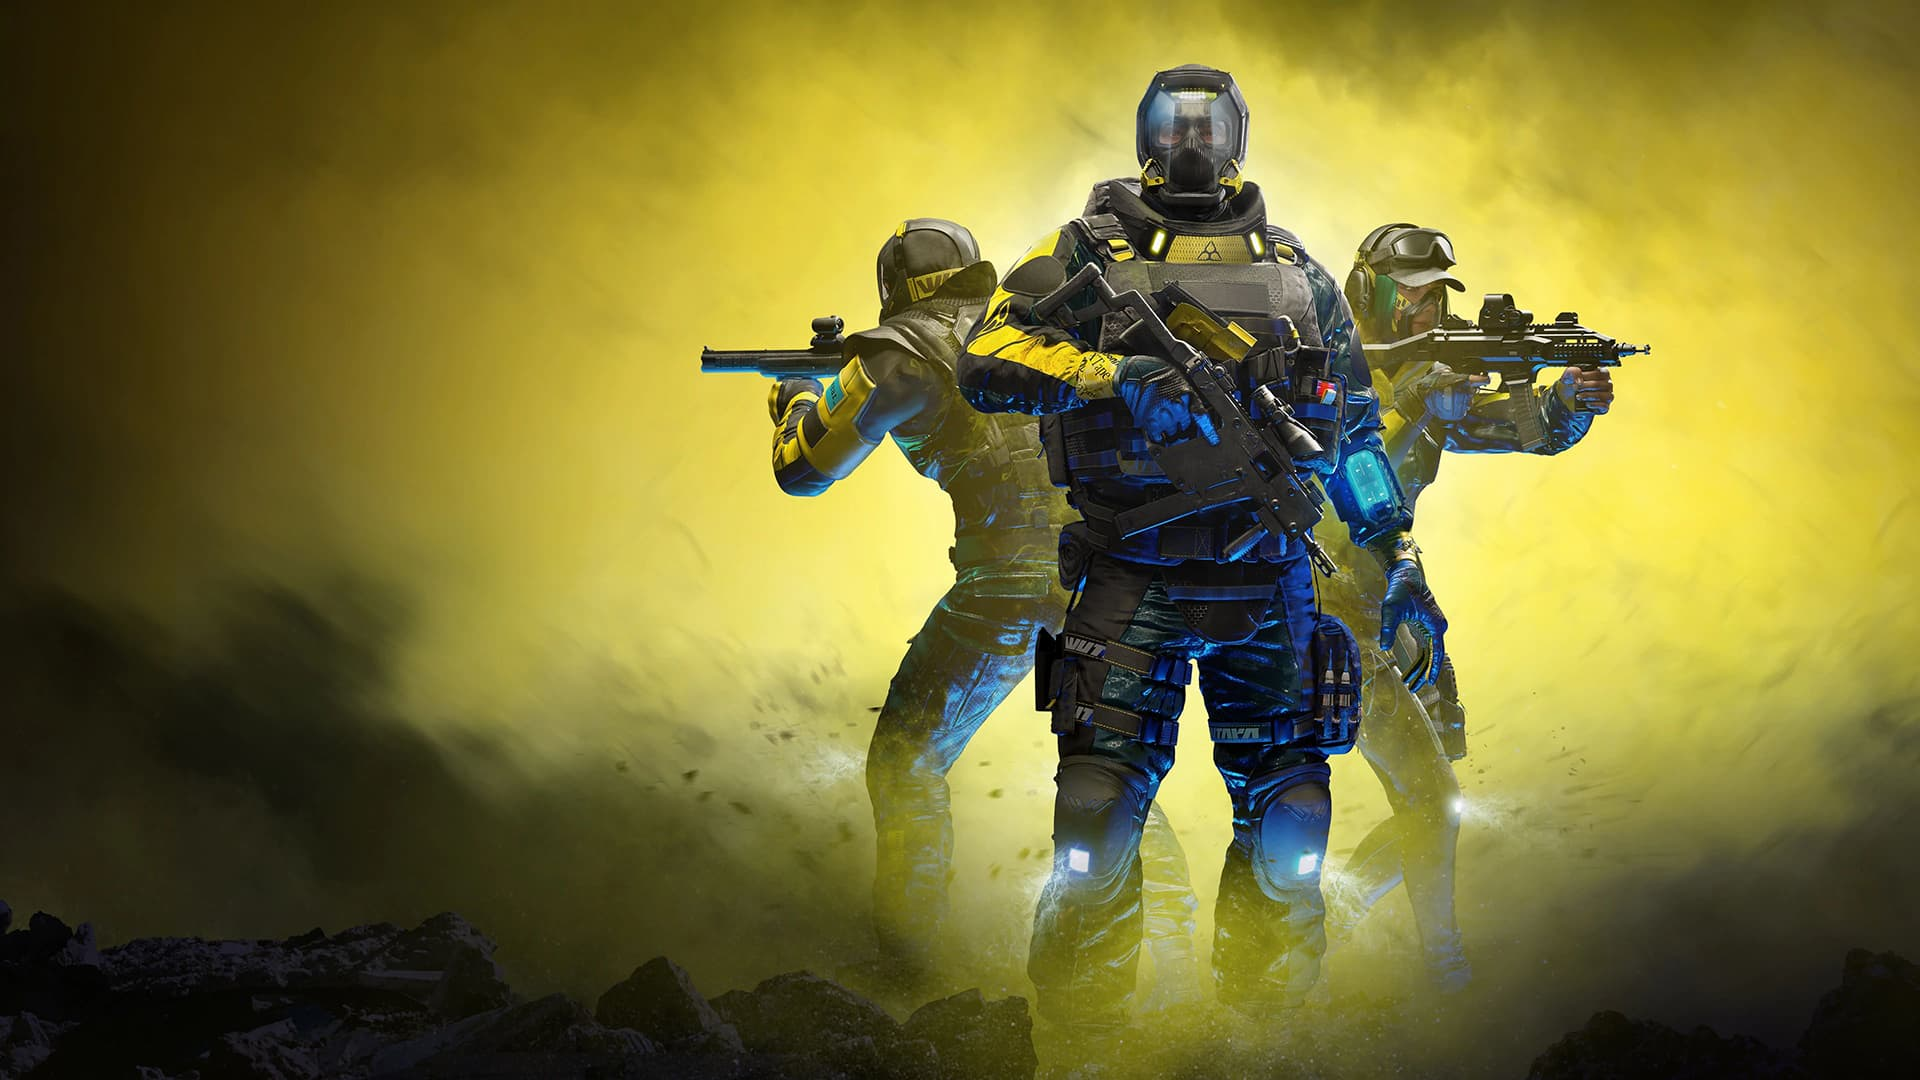 Rainbow Six Extraction is now delayed until 2022